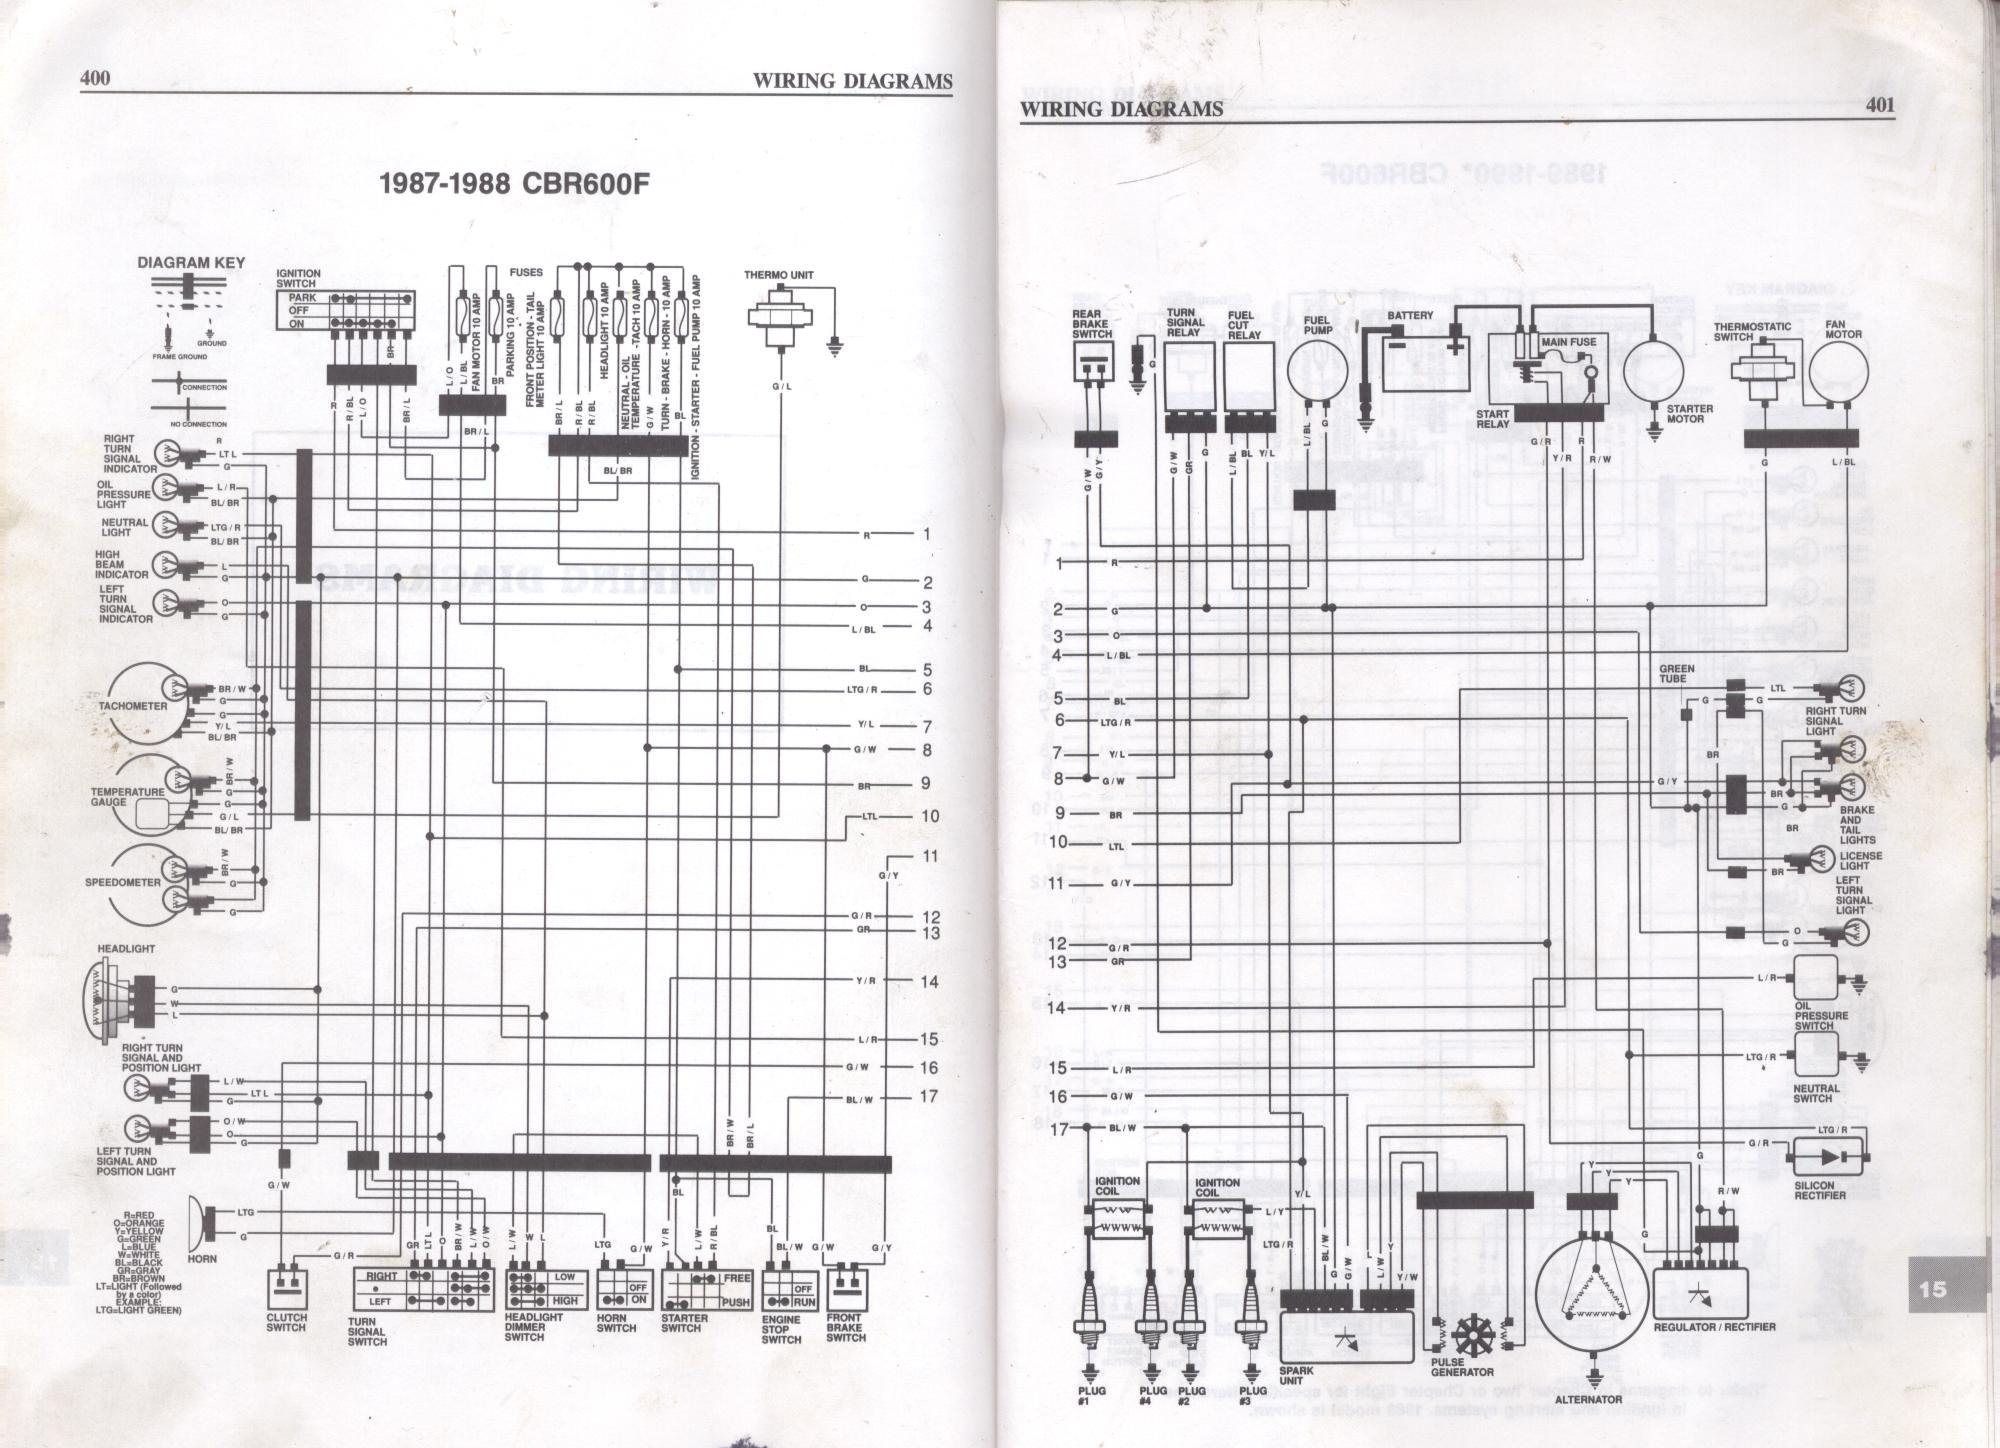 1987 1988 Honda CBR600F Wiring Diagrams?resize\=665%2C481 s i1 wp com www cyclechaos com images 0 0e 1 virago wiring diagram at gsmx.co